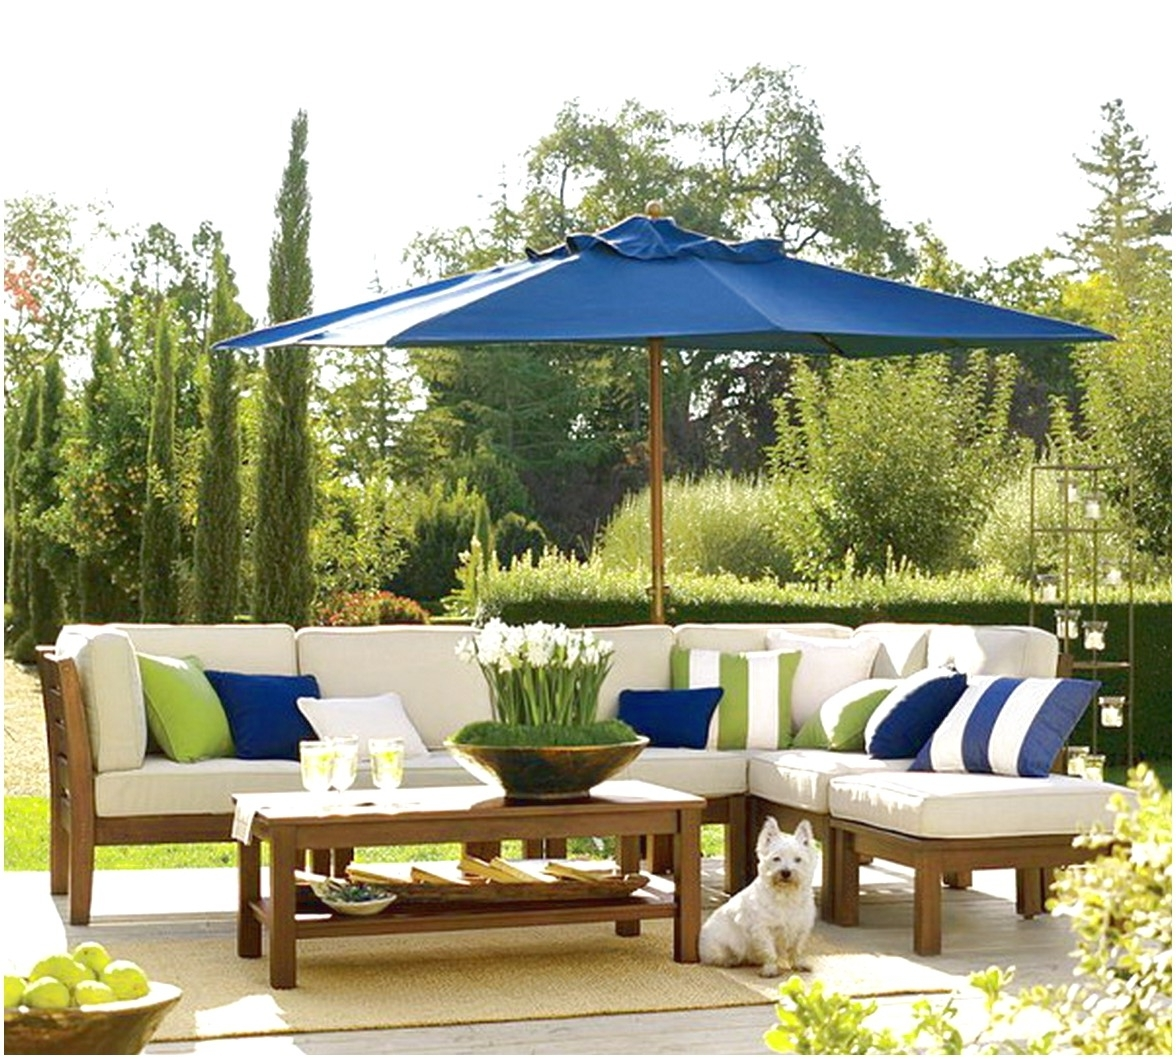 Preferred Outdoor Patio Furniture With Blue Patio Umbrella : Surprising Design Intended For Blue Patio Umbrellas (Gallery 7 of 20)